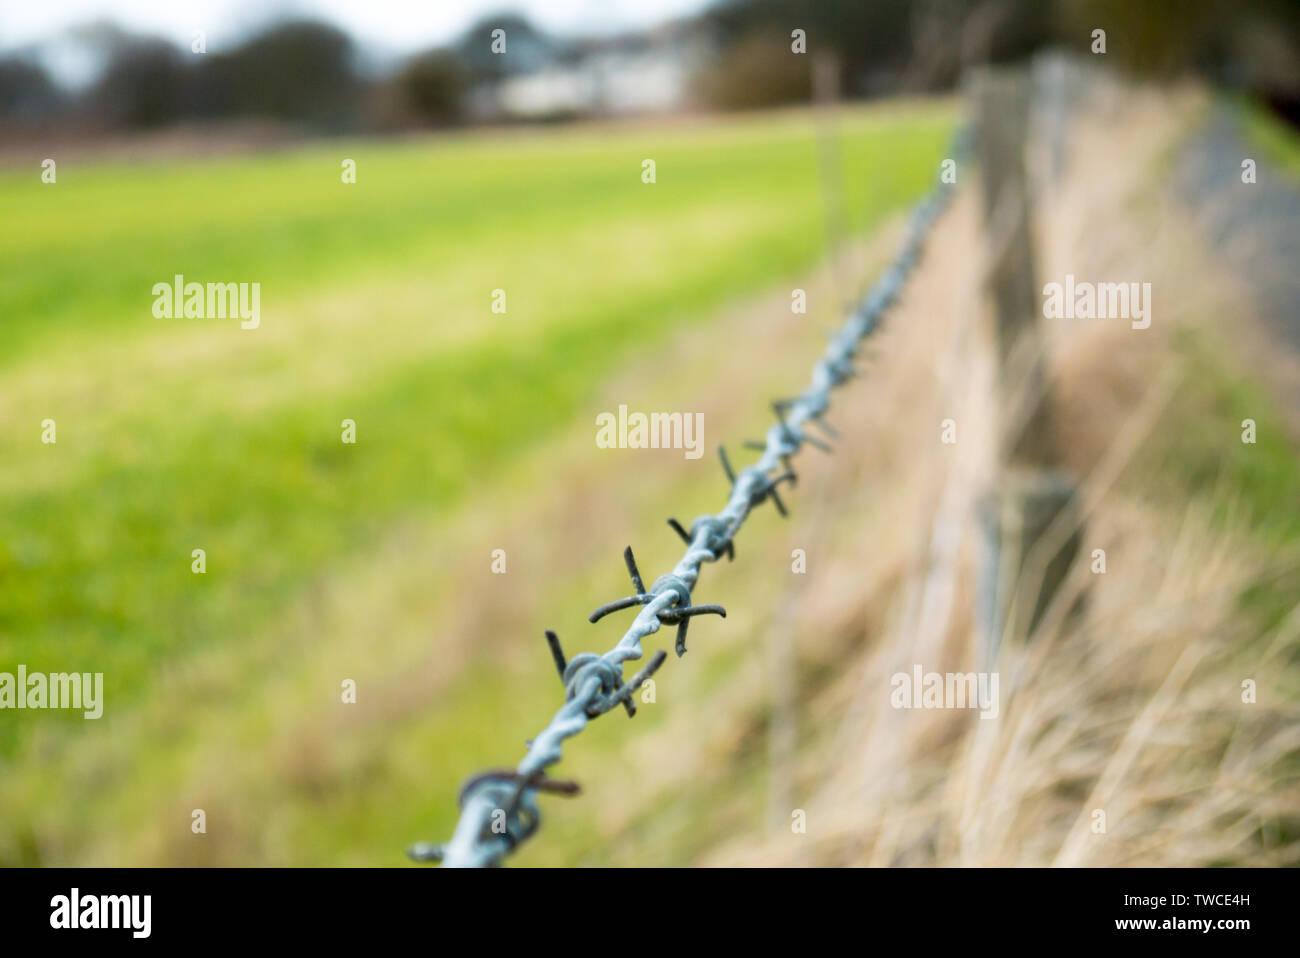 Dangerous Barbed Wire Fence Lining a Countryside Pathway - Stock Image